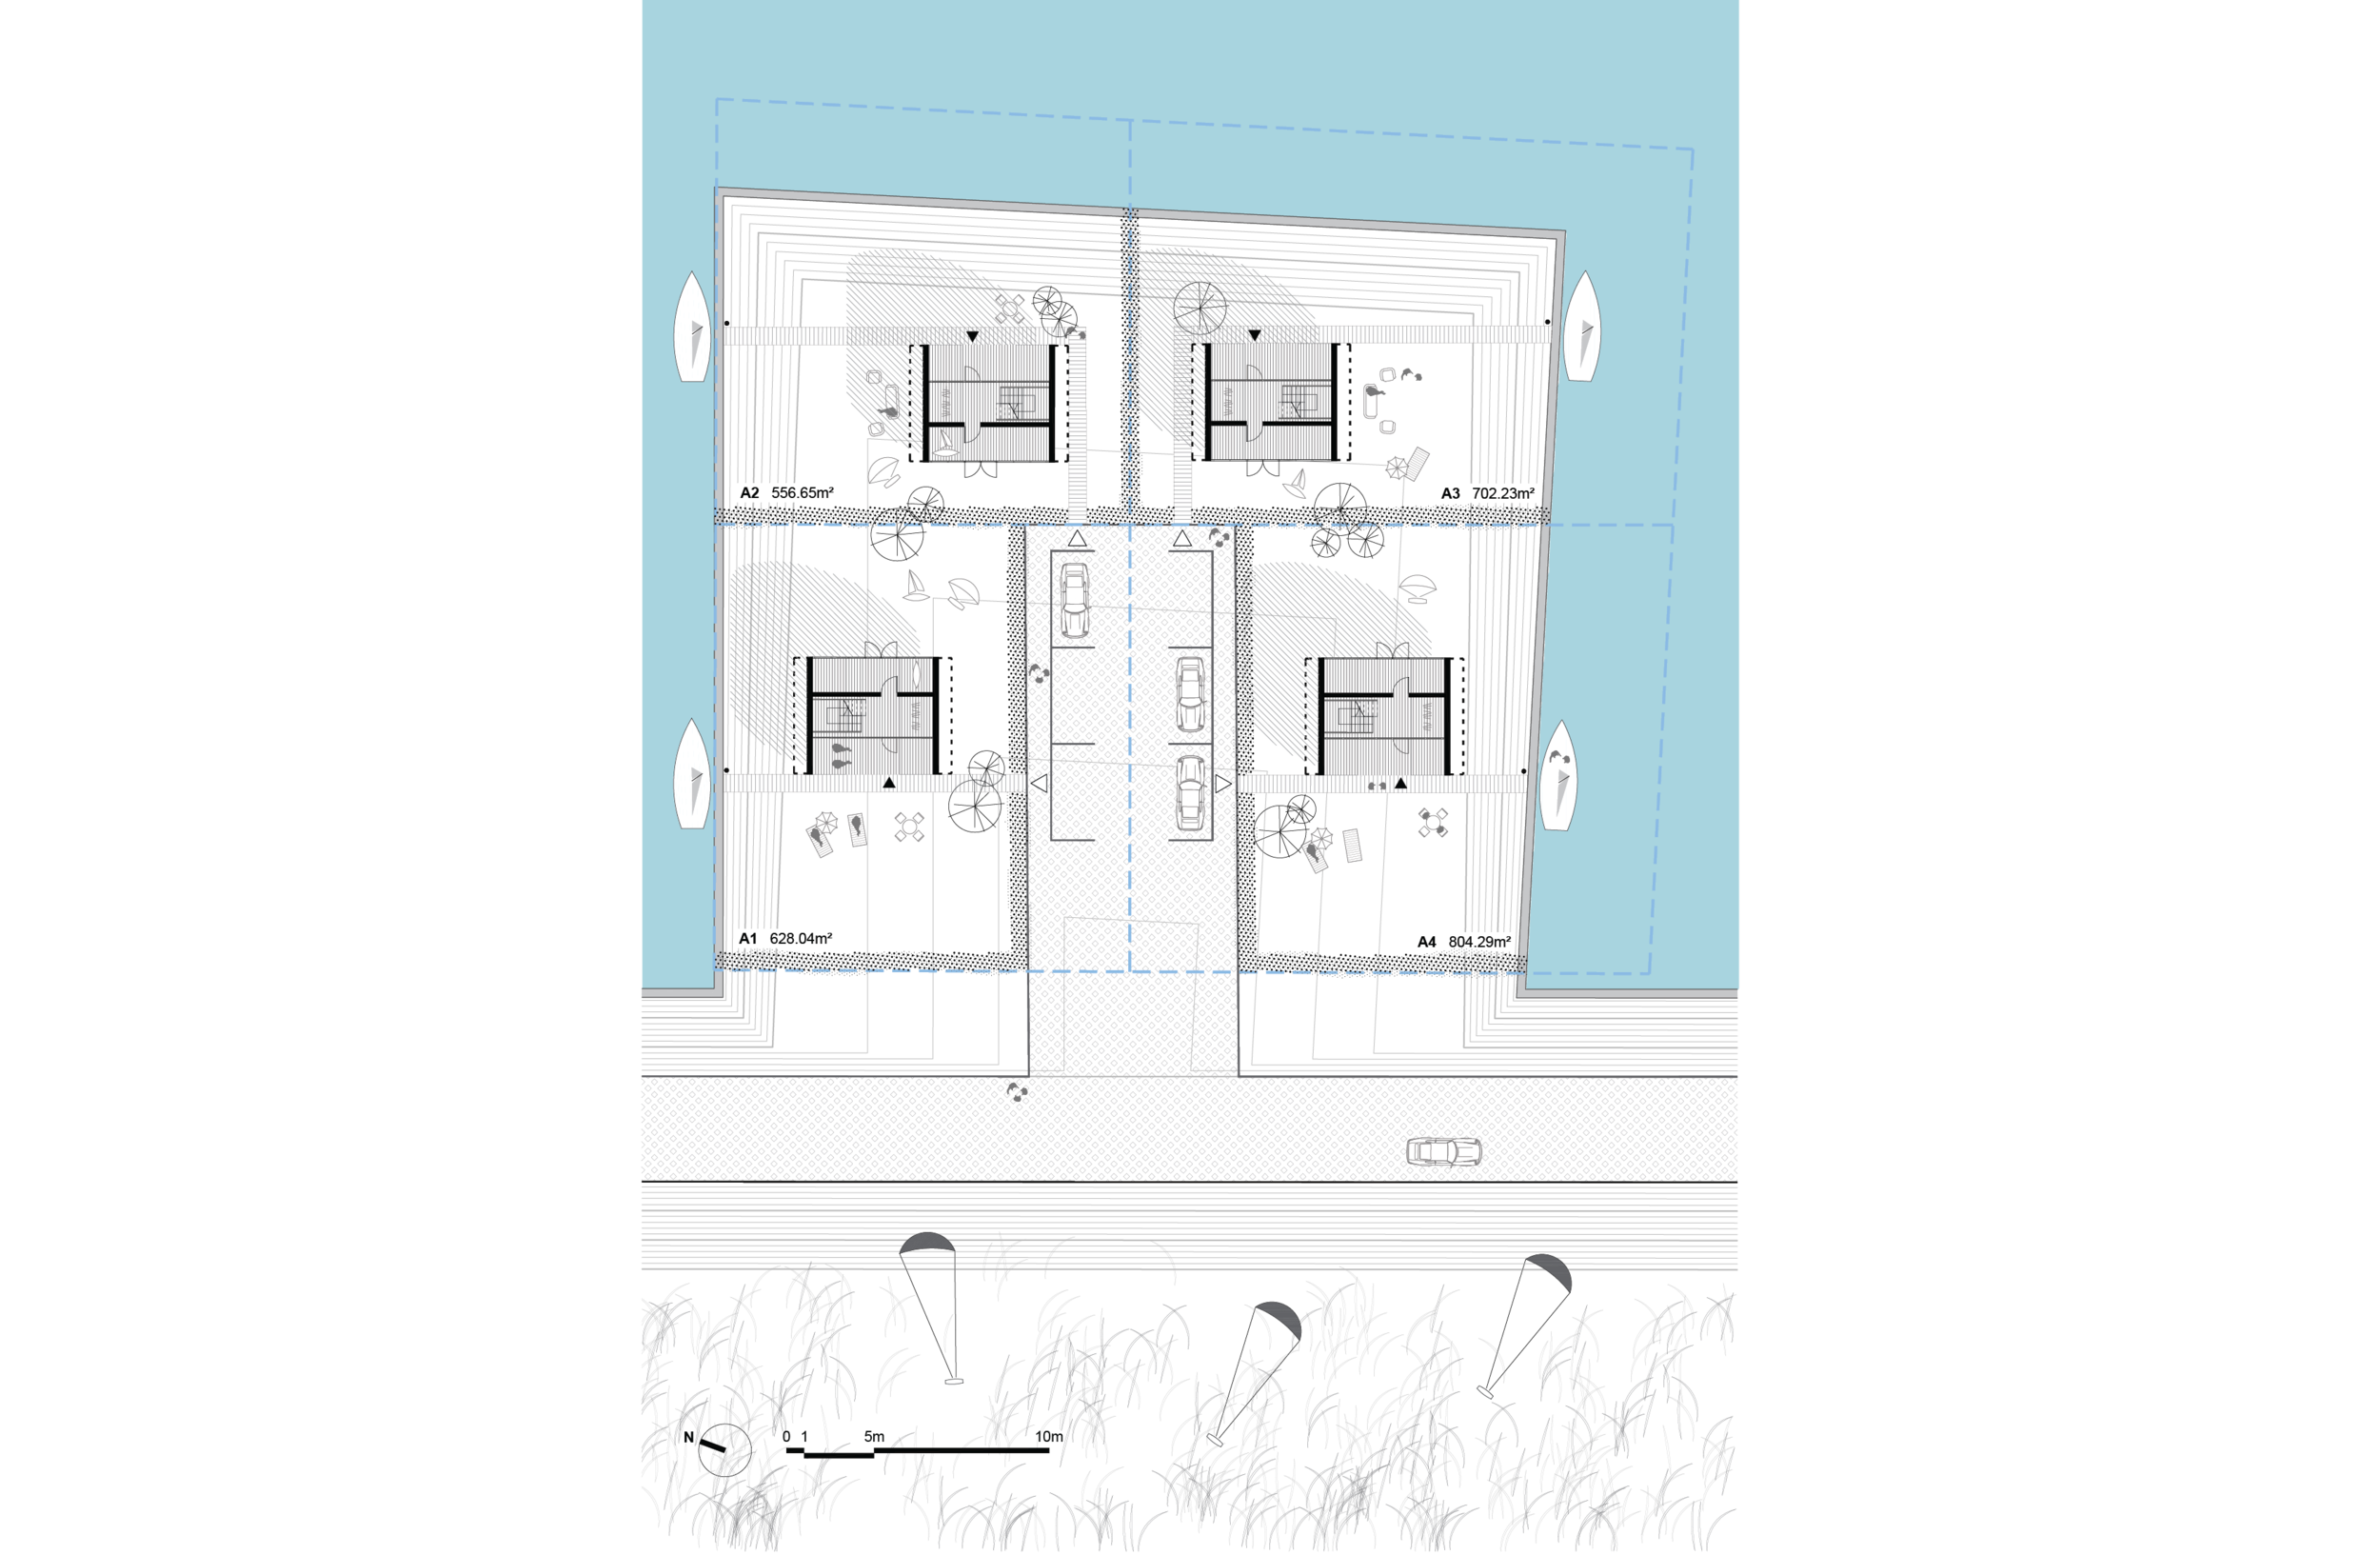 DOARCHITECTS_Rolling homes-03.png